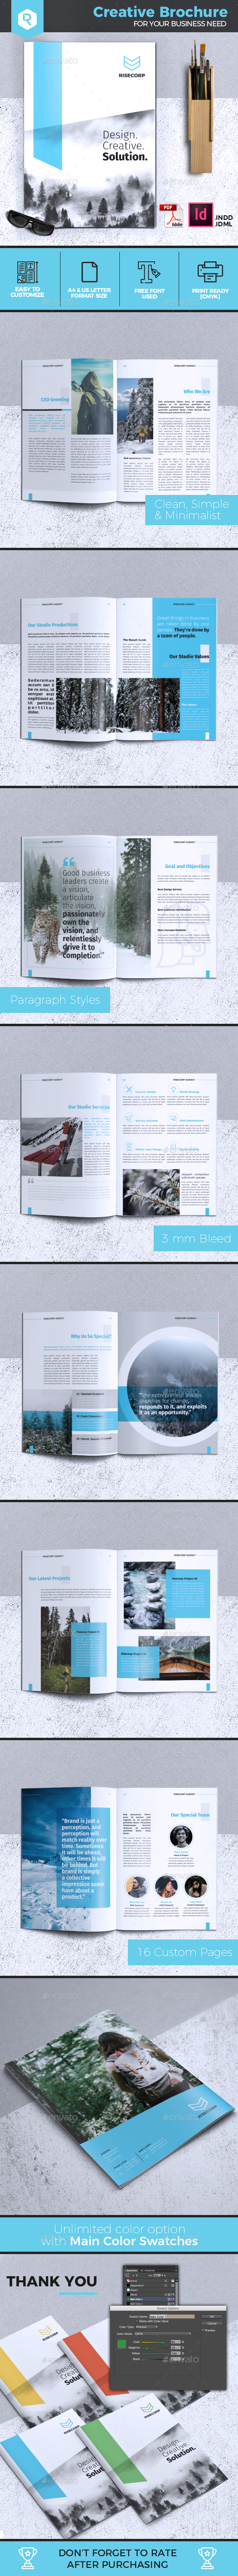 Creative Brochure Template Vol. 28 - Corporate Brochures